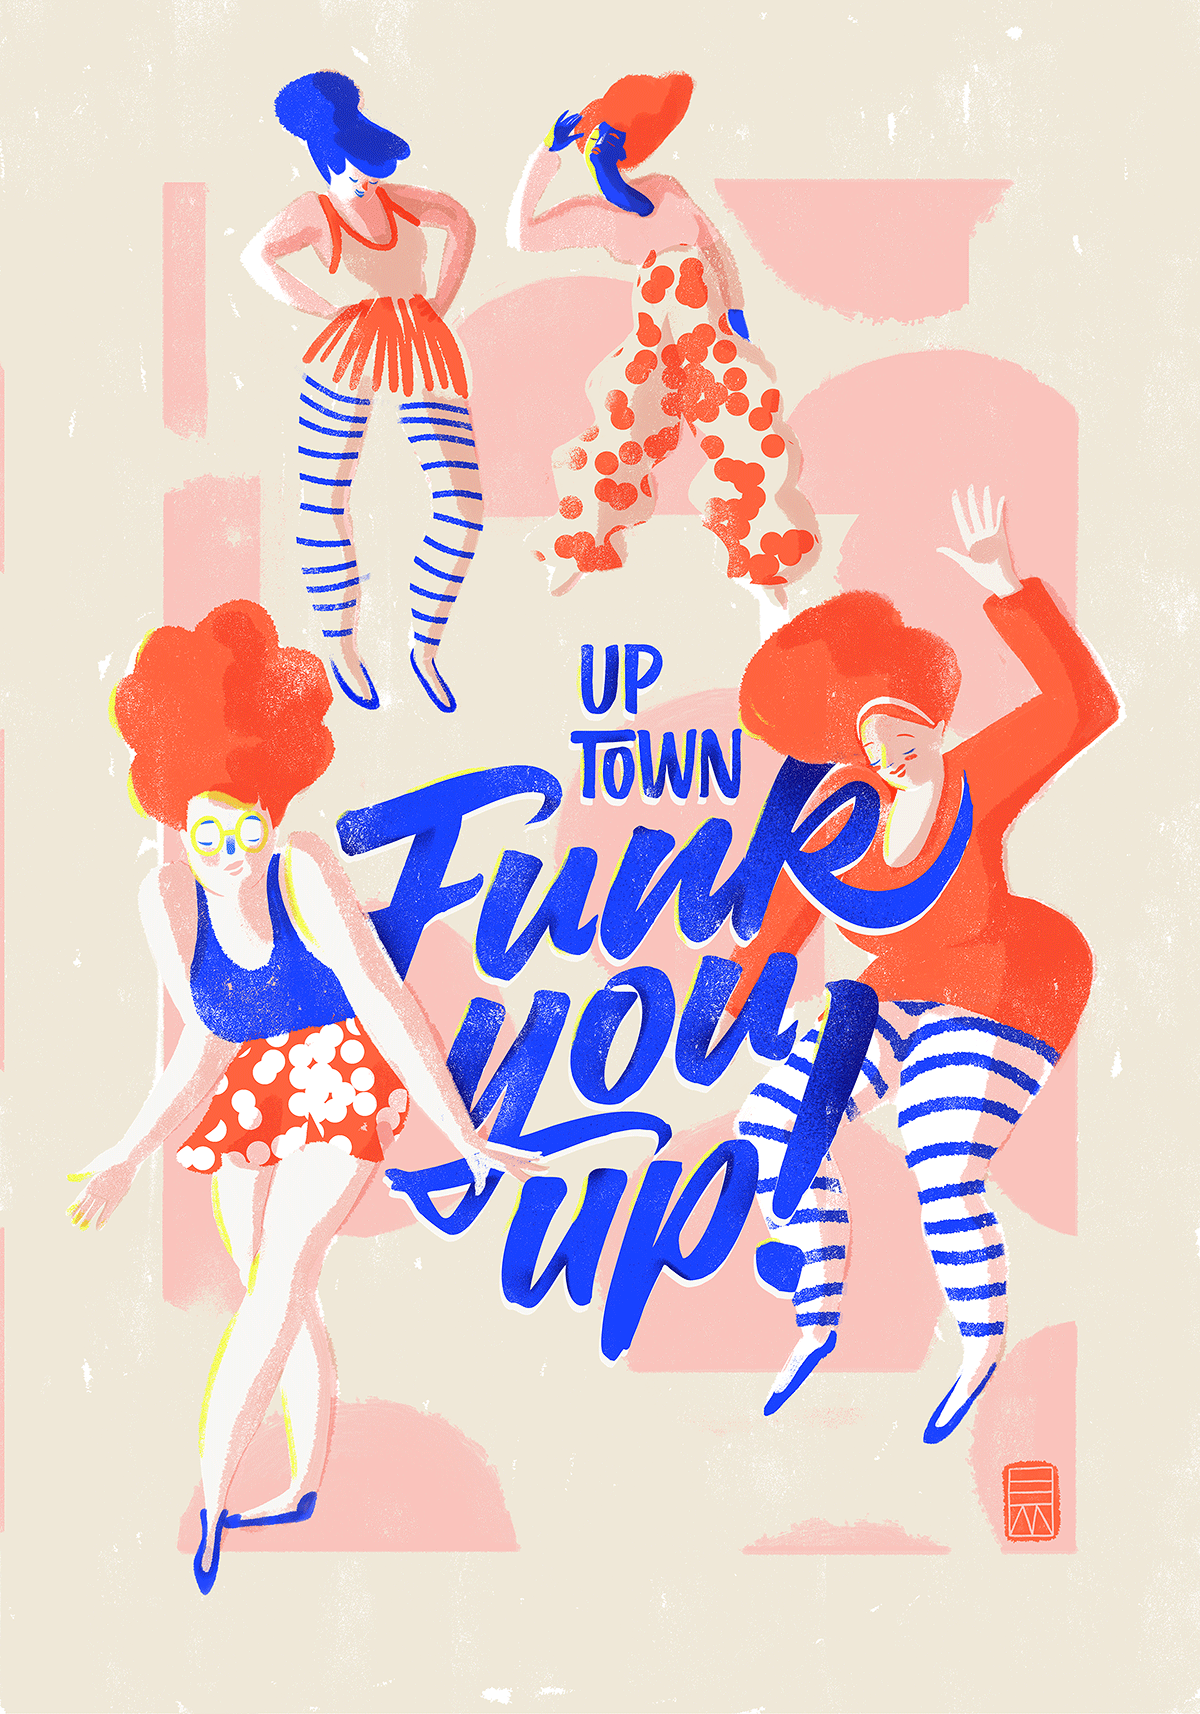 Quotes A new font by Yani Arabena, Guille Vizzari & Ale Paul for Sudtipos. Illustrations by Eugenia Mello.  Get the font https://www.myfonts.com/fonts/sudtipos/quotes/